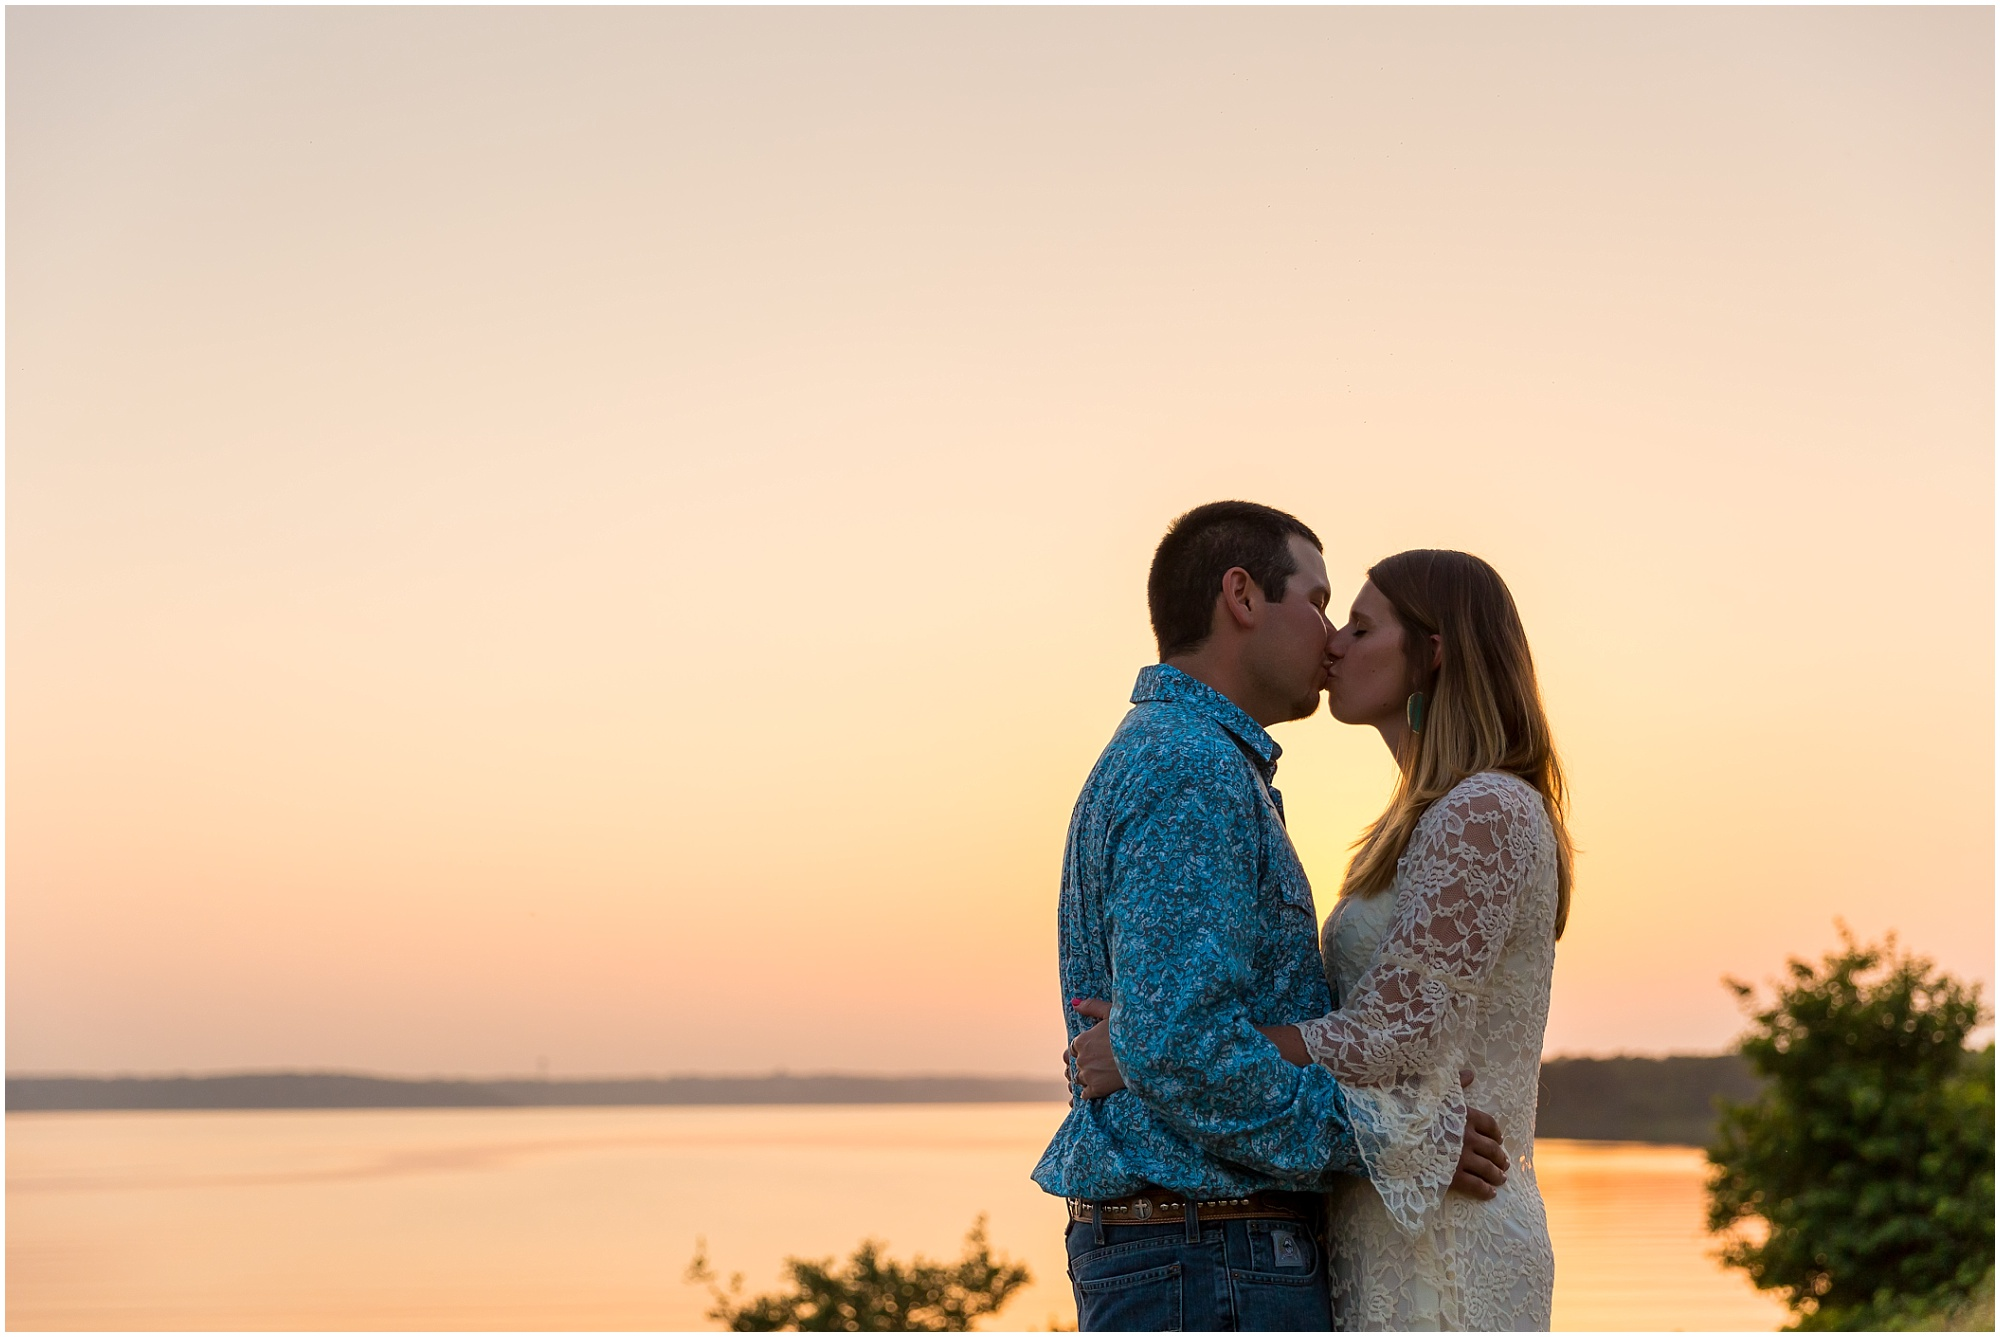 A couple kisses at Belton Lake Dam while the sunset turns the sky orange behind them over the lake - Belton, Texas Engagement session - Jason & Melaina Photography - www.jasonandmelaina.com